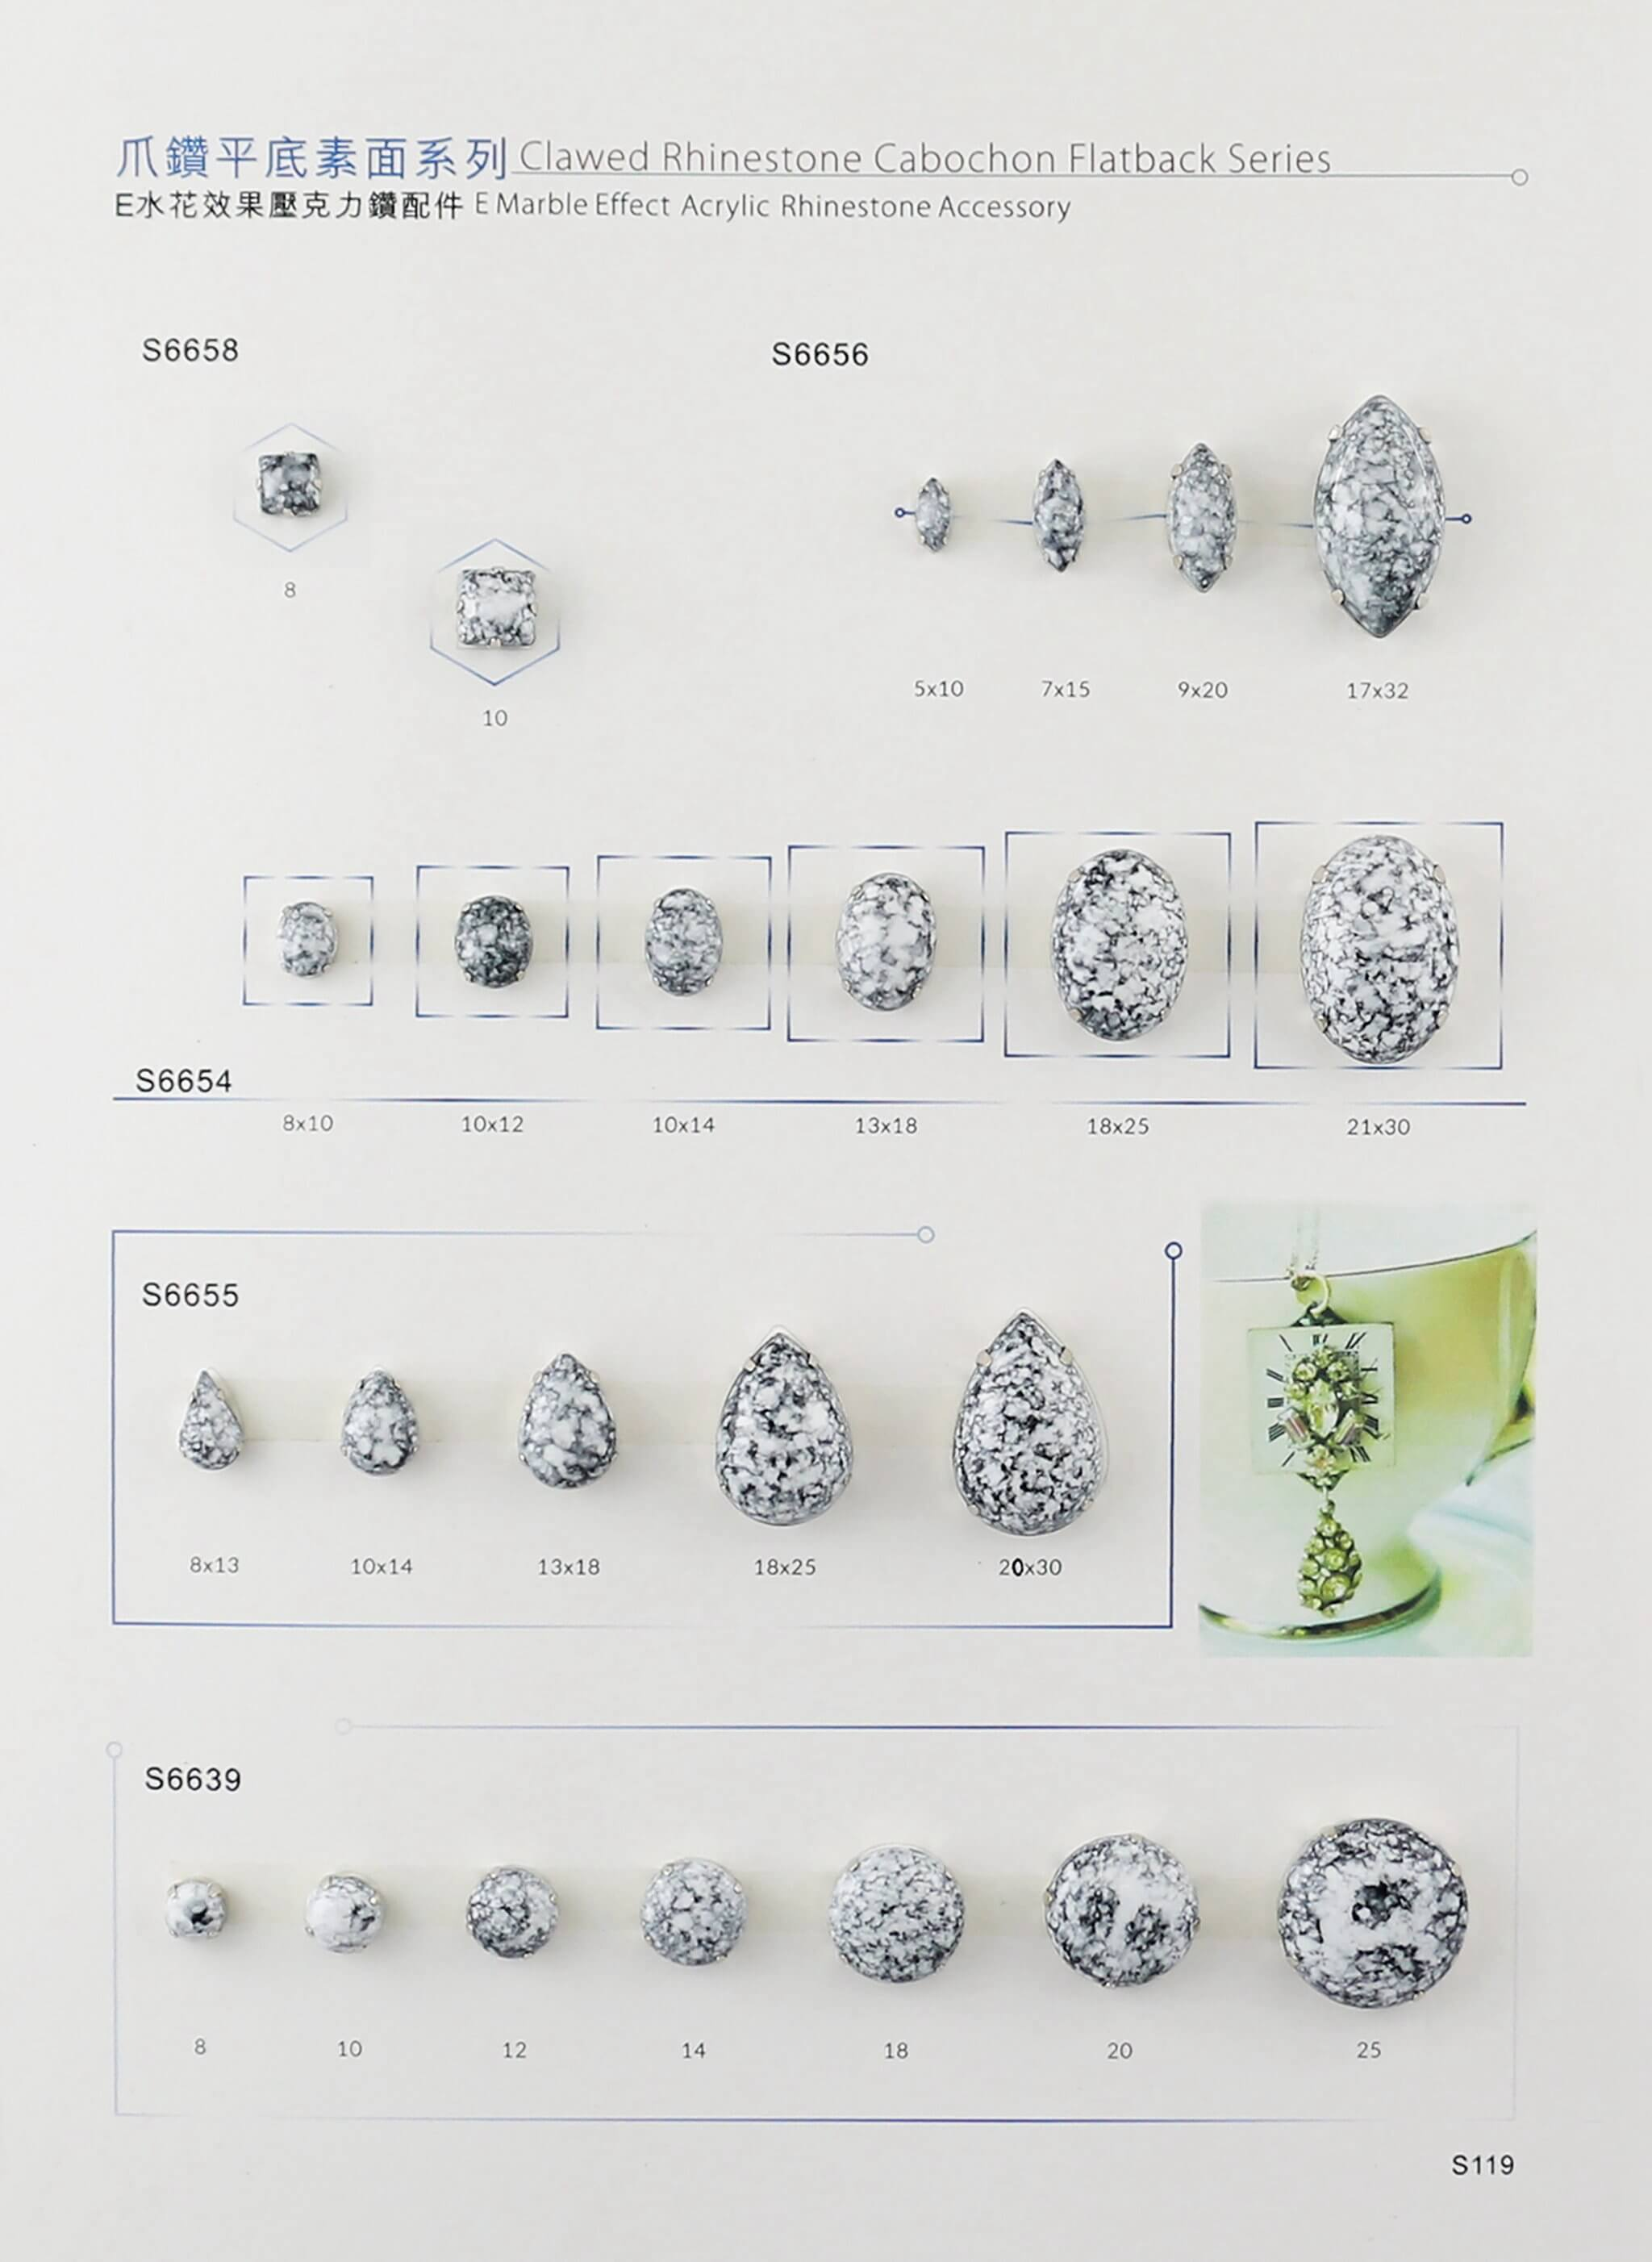 claw rhinestone marble effect catalogue-S119